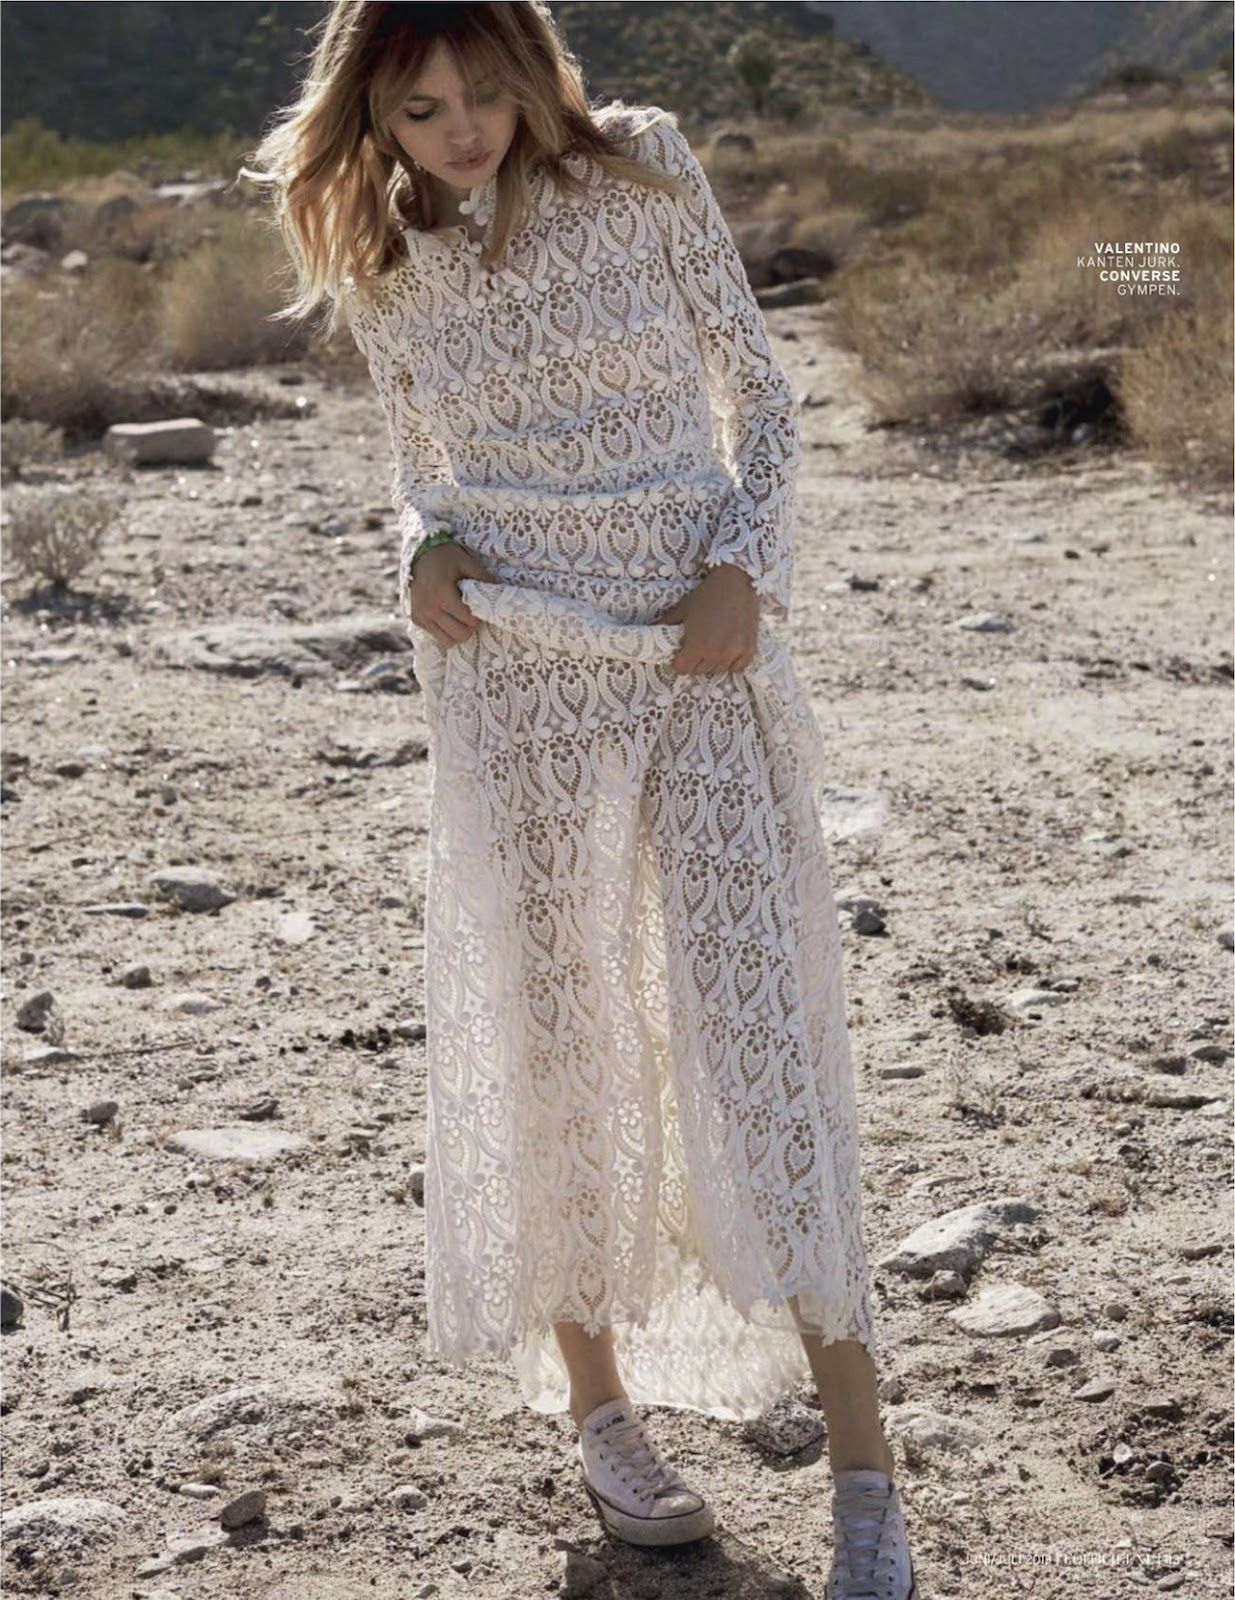 coachella: staz by daniel king for l'officiel nl june/july 2013 | visual optimism; fashion editorials, shows, campaigns & more!